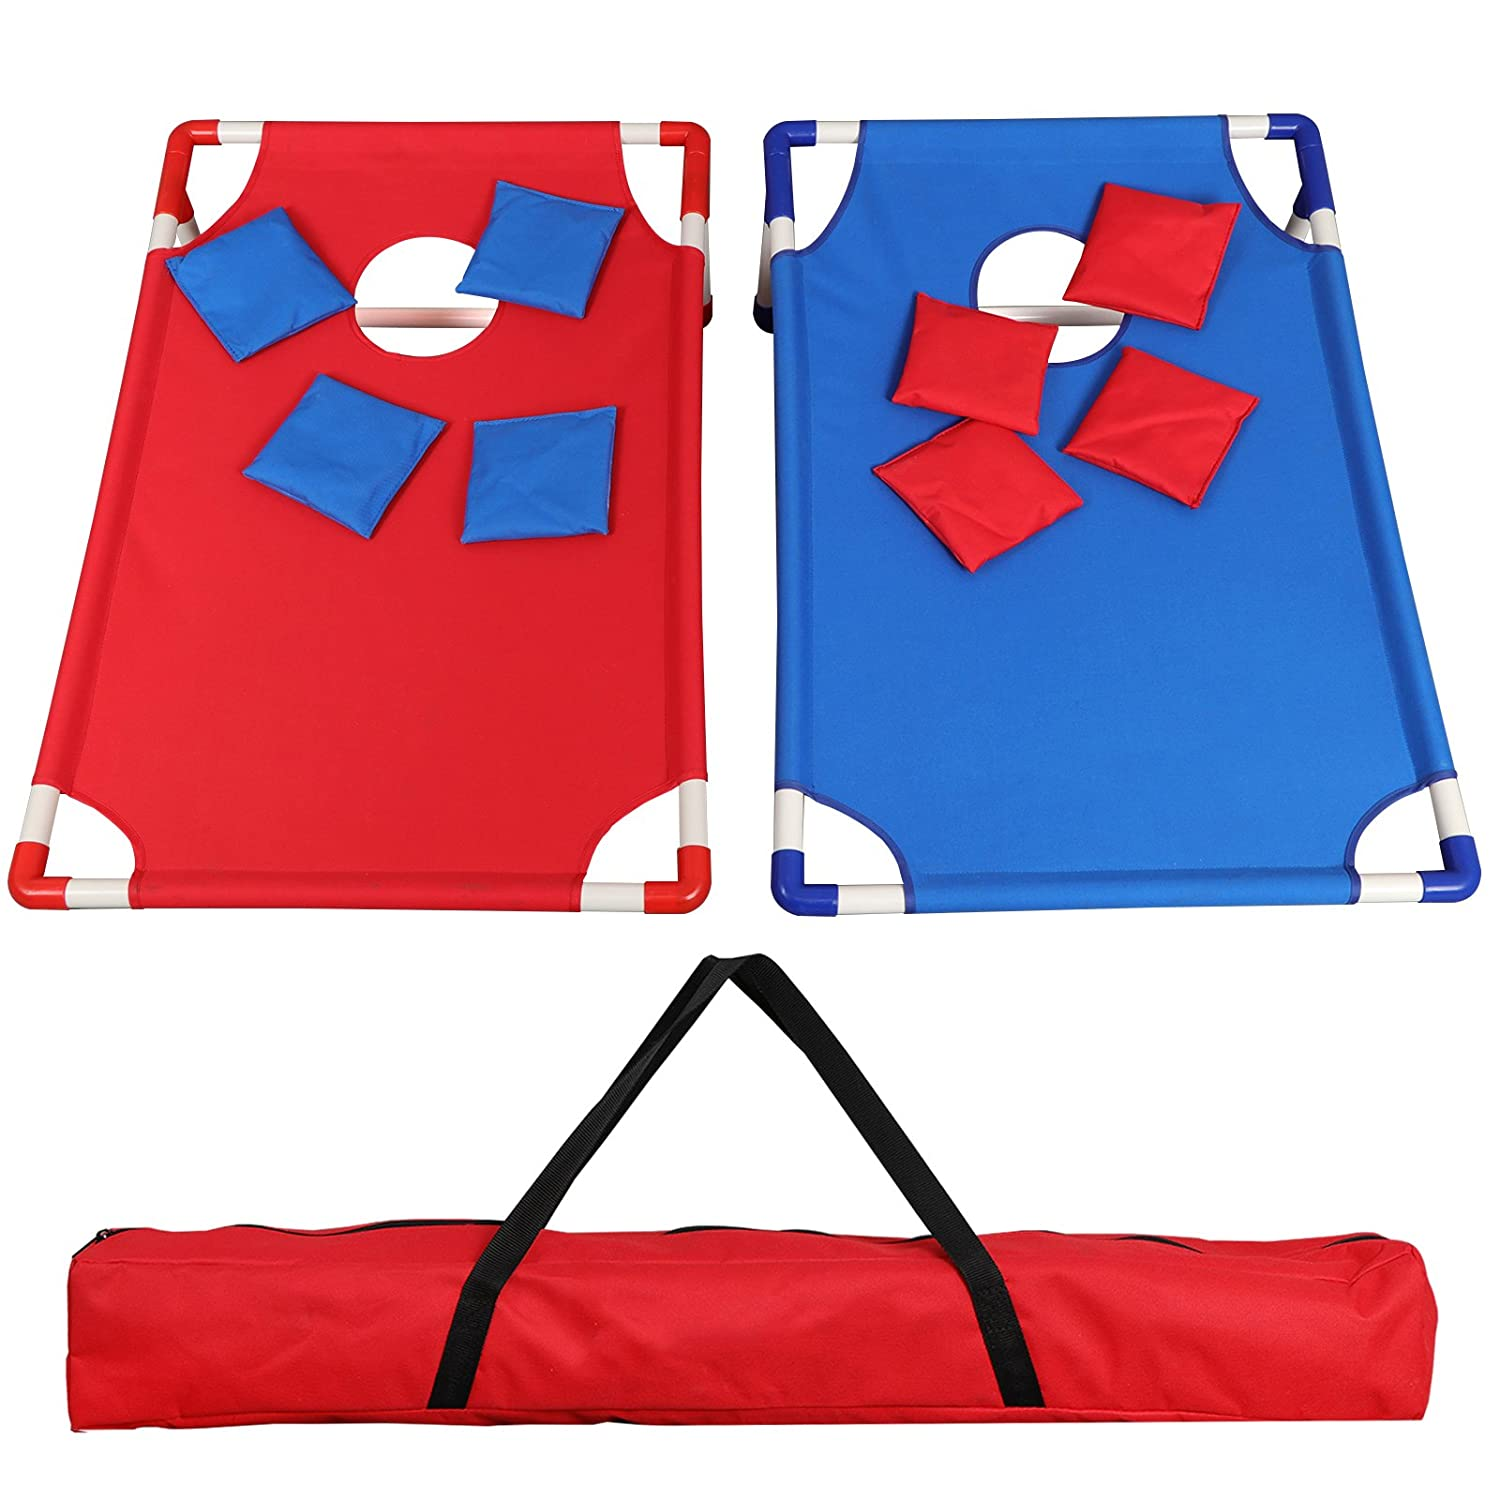 f2 Cポータブル折りたたみ式アルミフレーム付きBeanバッグCornhole Toss Game Set Boards with 8 Beanバッグと携帯ケース B07DW5RBXH 3FT*2FT Blue& Red 3FT*2FT Blue& Red